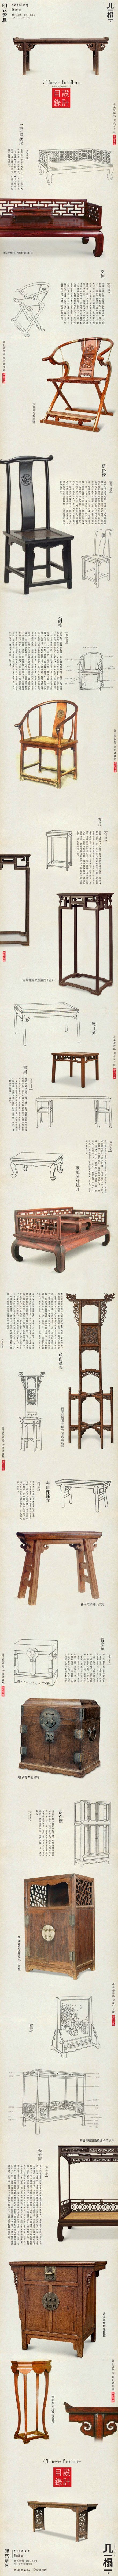 Beautiful illustrated Chinese furniture catalogue. Source: weibo.com/catalogworld